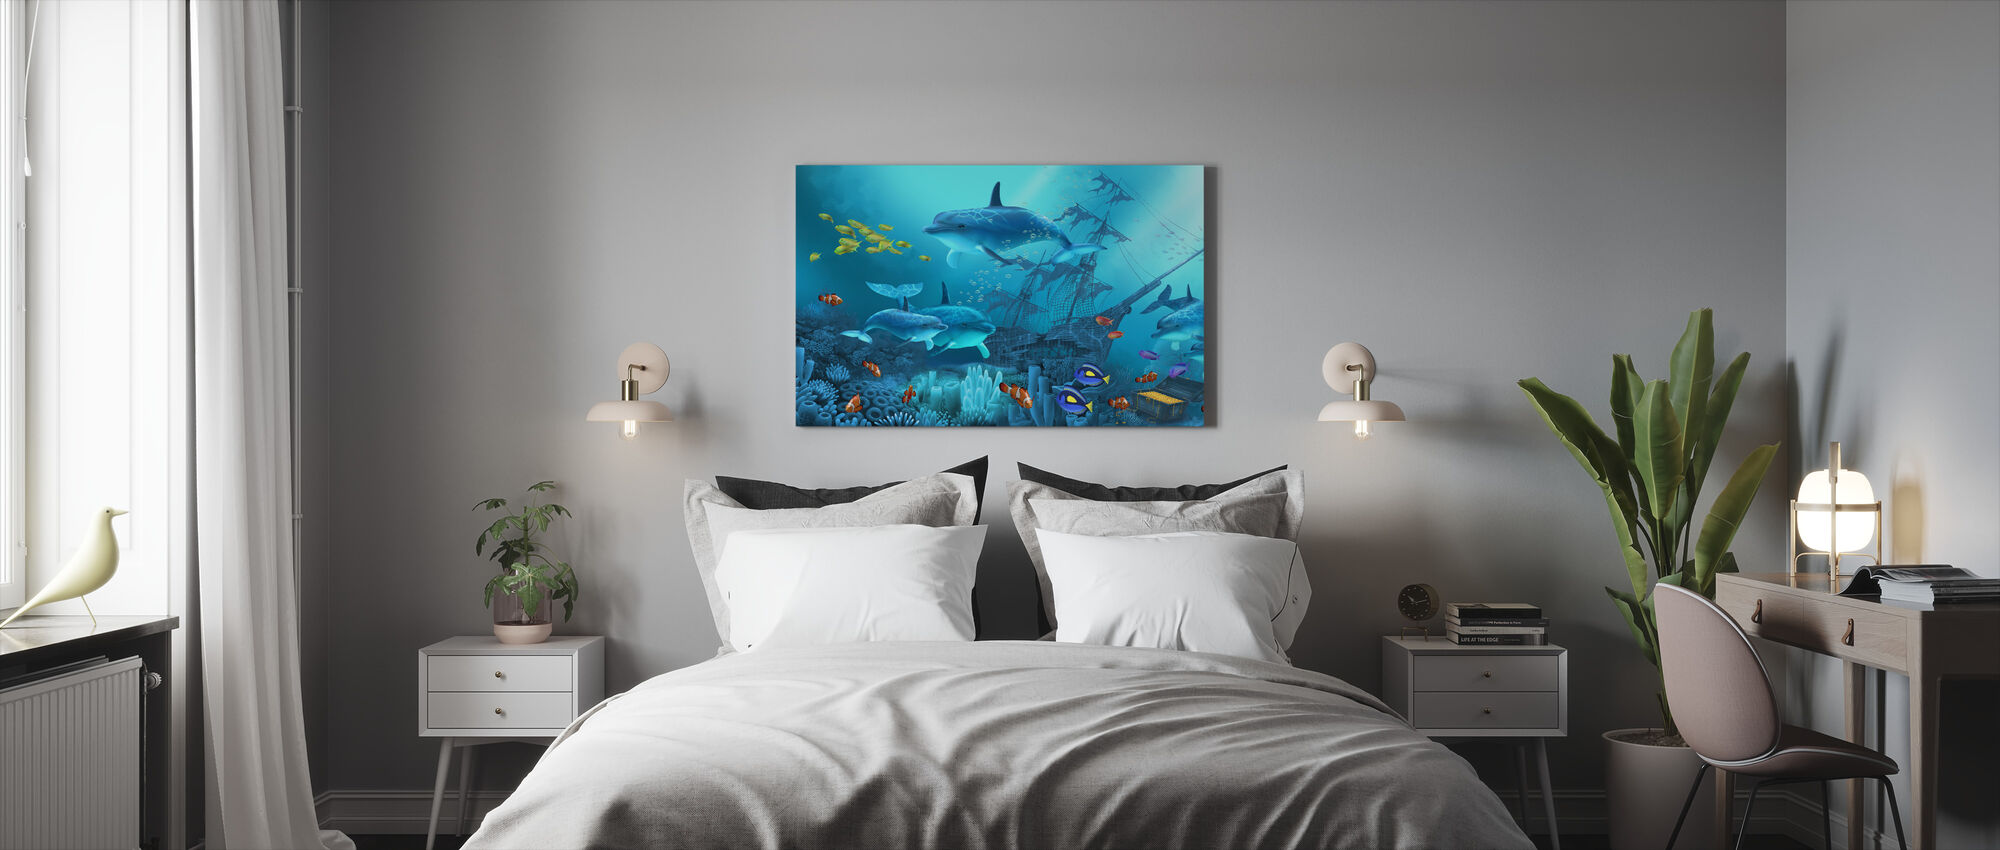 Lost Treasures - Canvas print - Bedroom